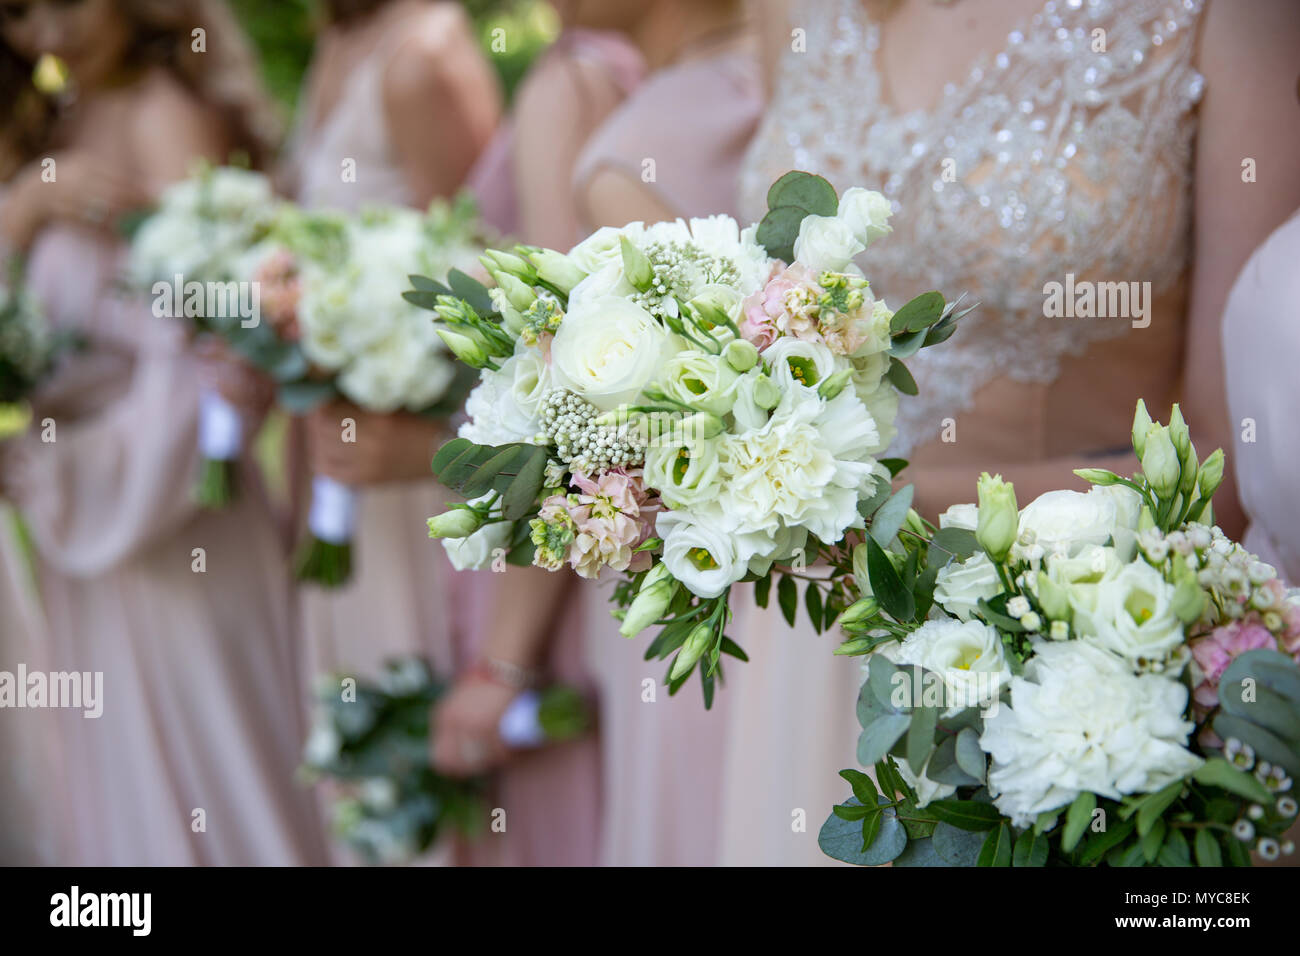 Bride and bridesmaids in pink dresses reach out their hands with tender wedding bouquets. wedding traditions Stock Photo